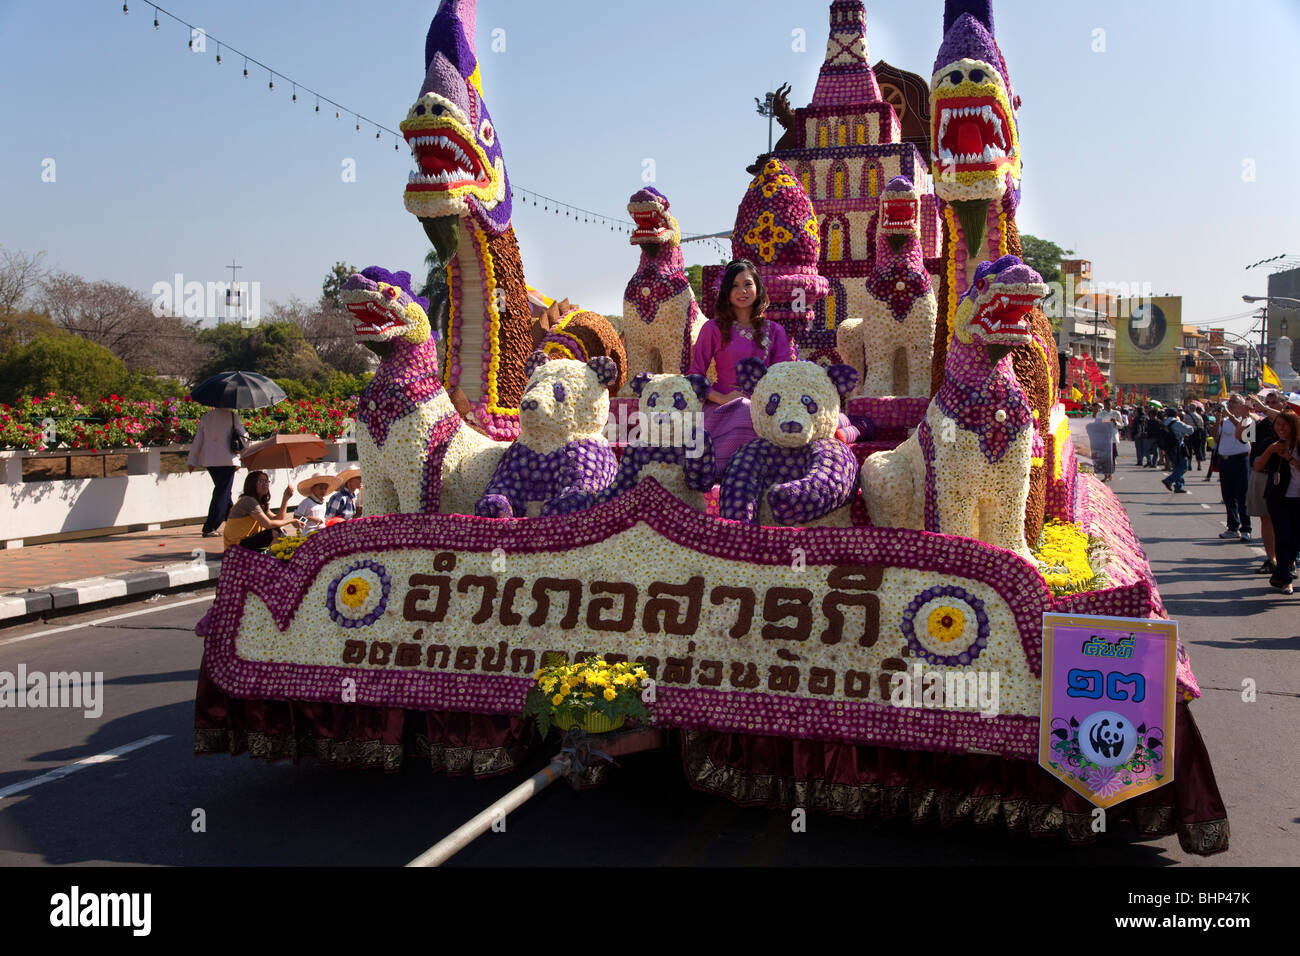 Flower display, ancient and modern floral art gaily decorated bedecked, parade of floats made with colorful flowers; - Stock Image